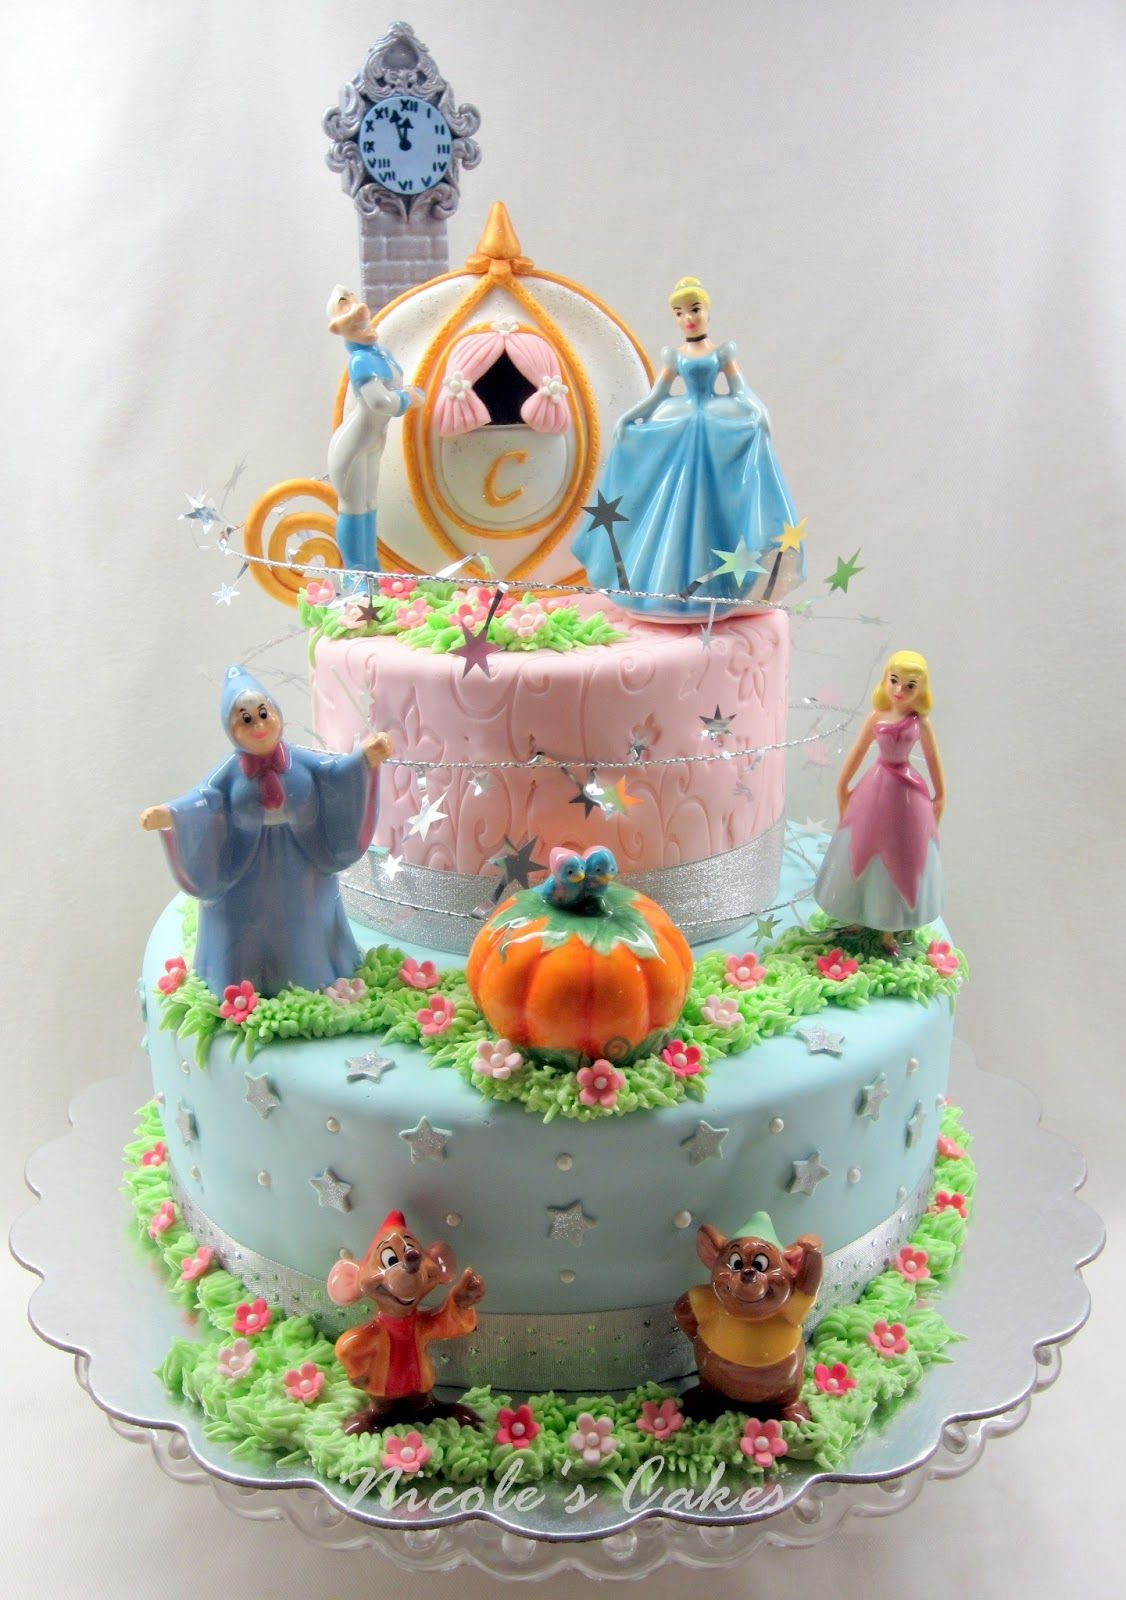 Cool The Cinderella Story A Birthday Cake Gateaux Cendrillon Funny Birthday Cards Online Inifofree Goldxyz